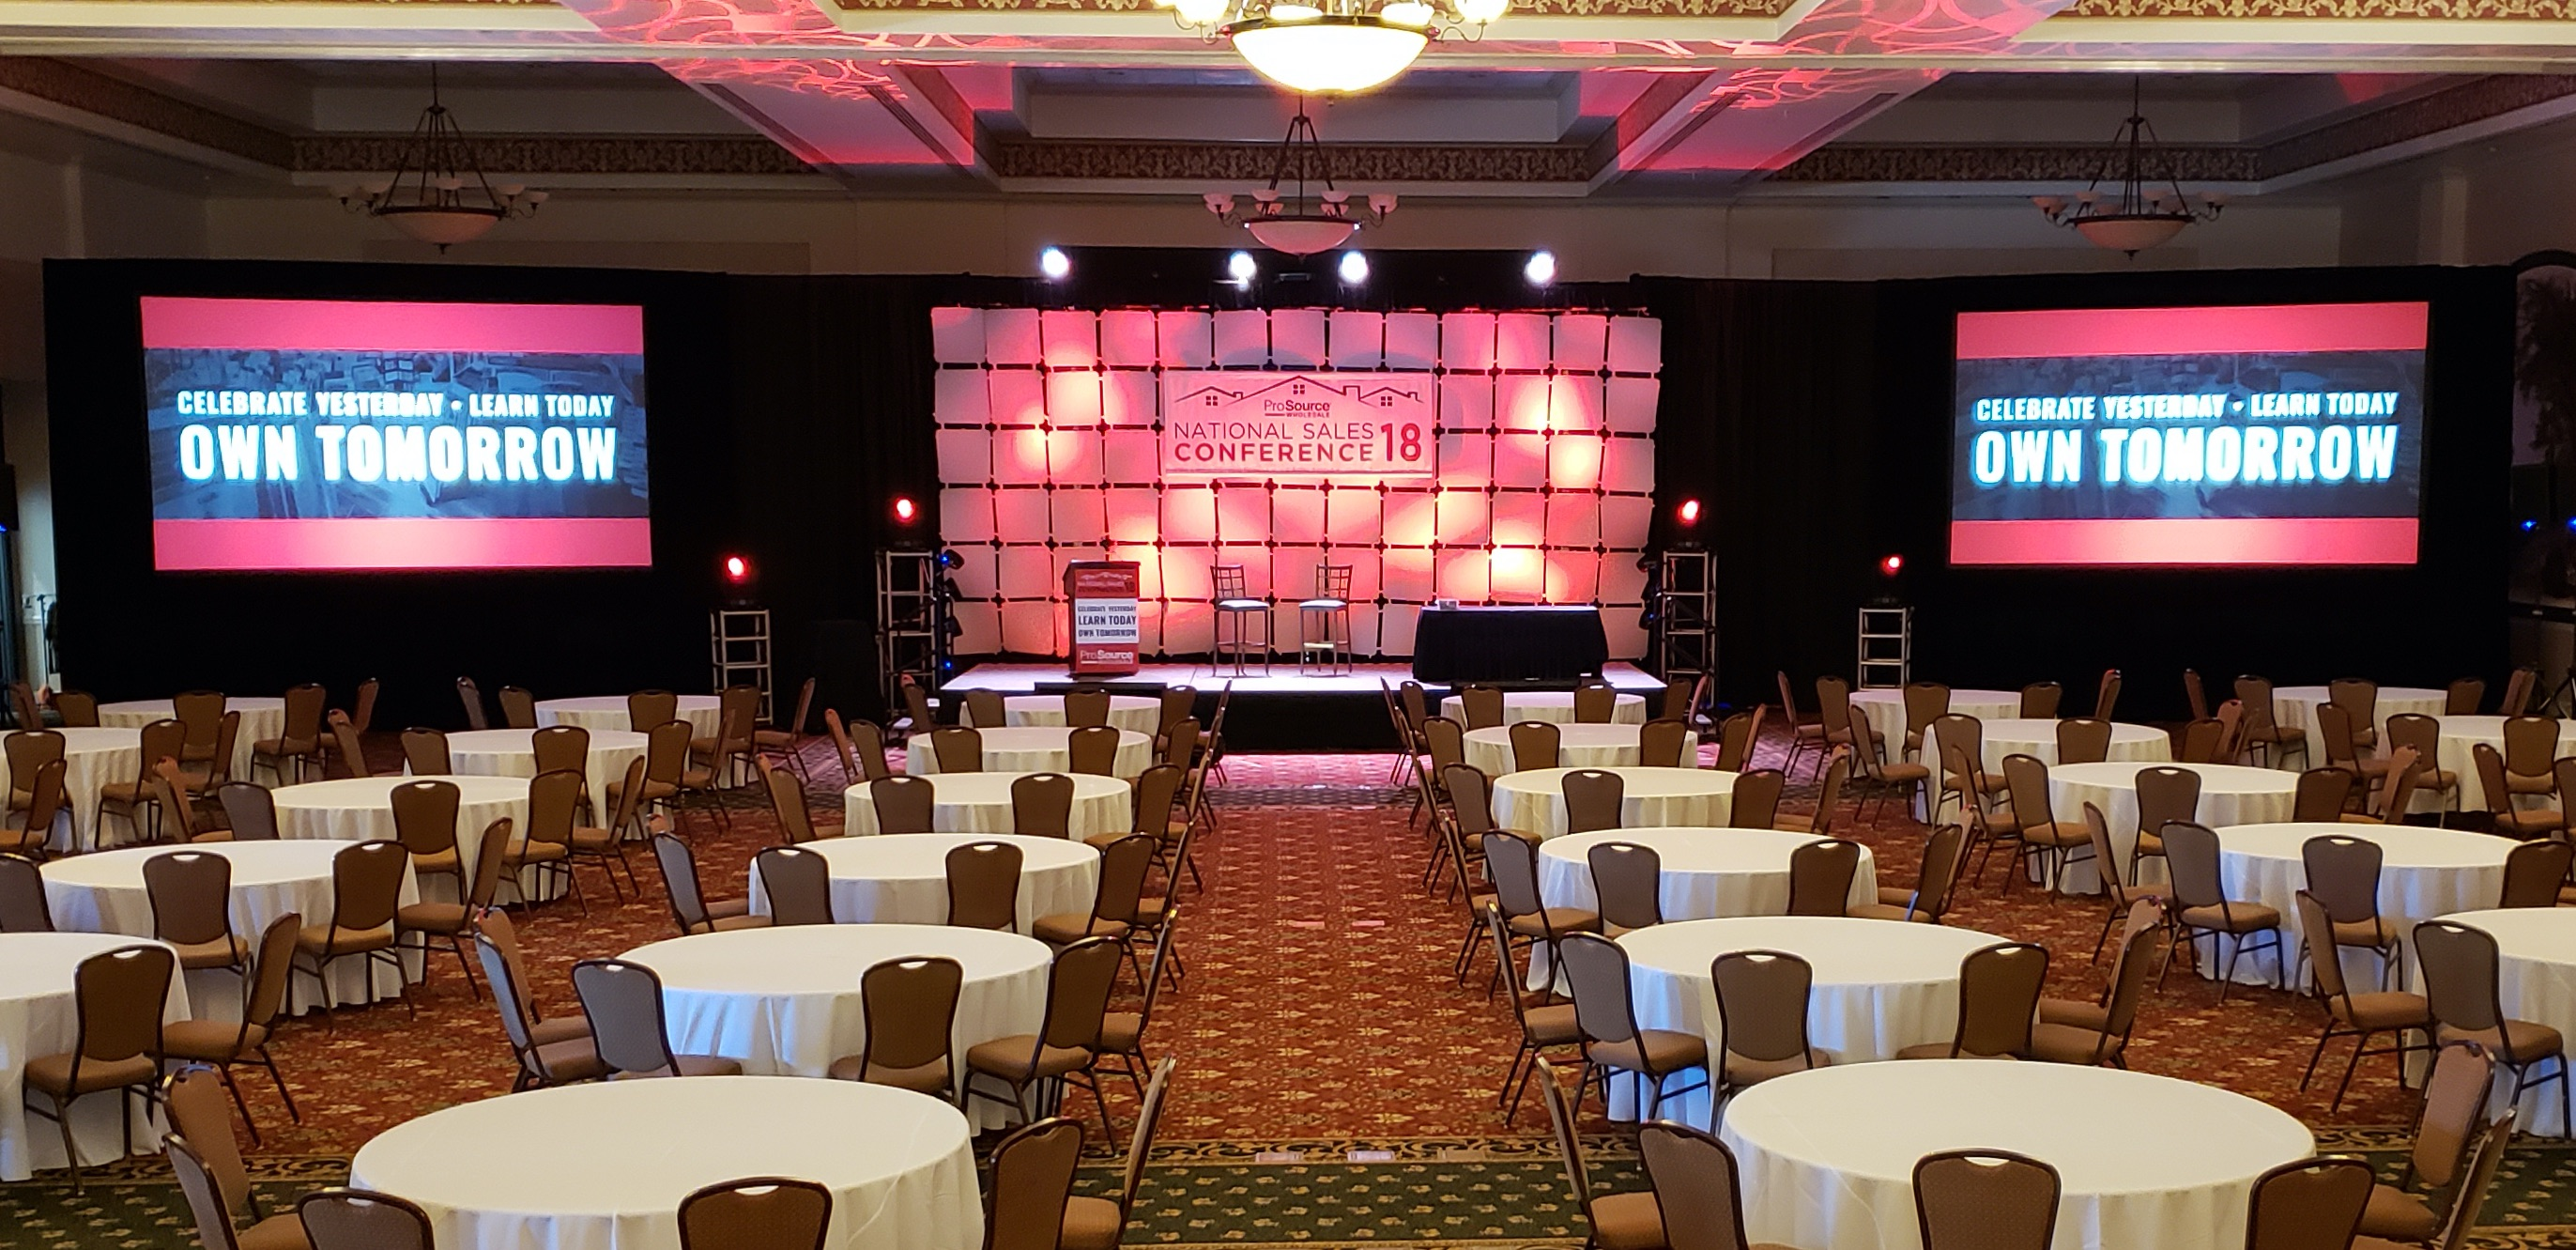 ProSource Wholesale 2018 National Conference stage event Audiovusal